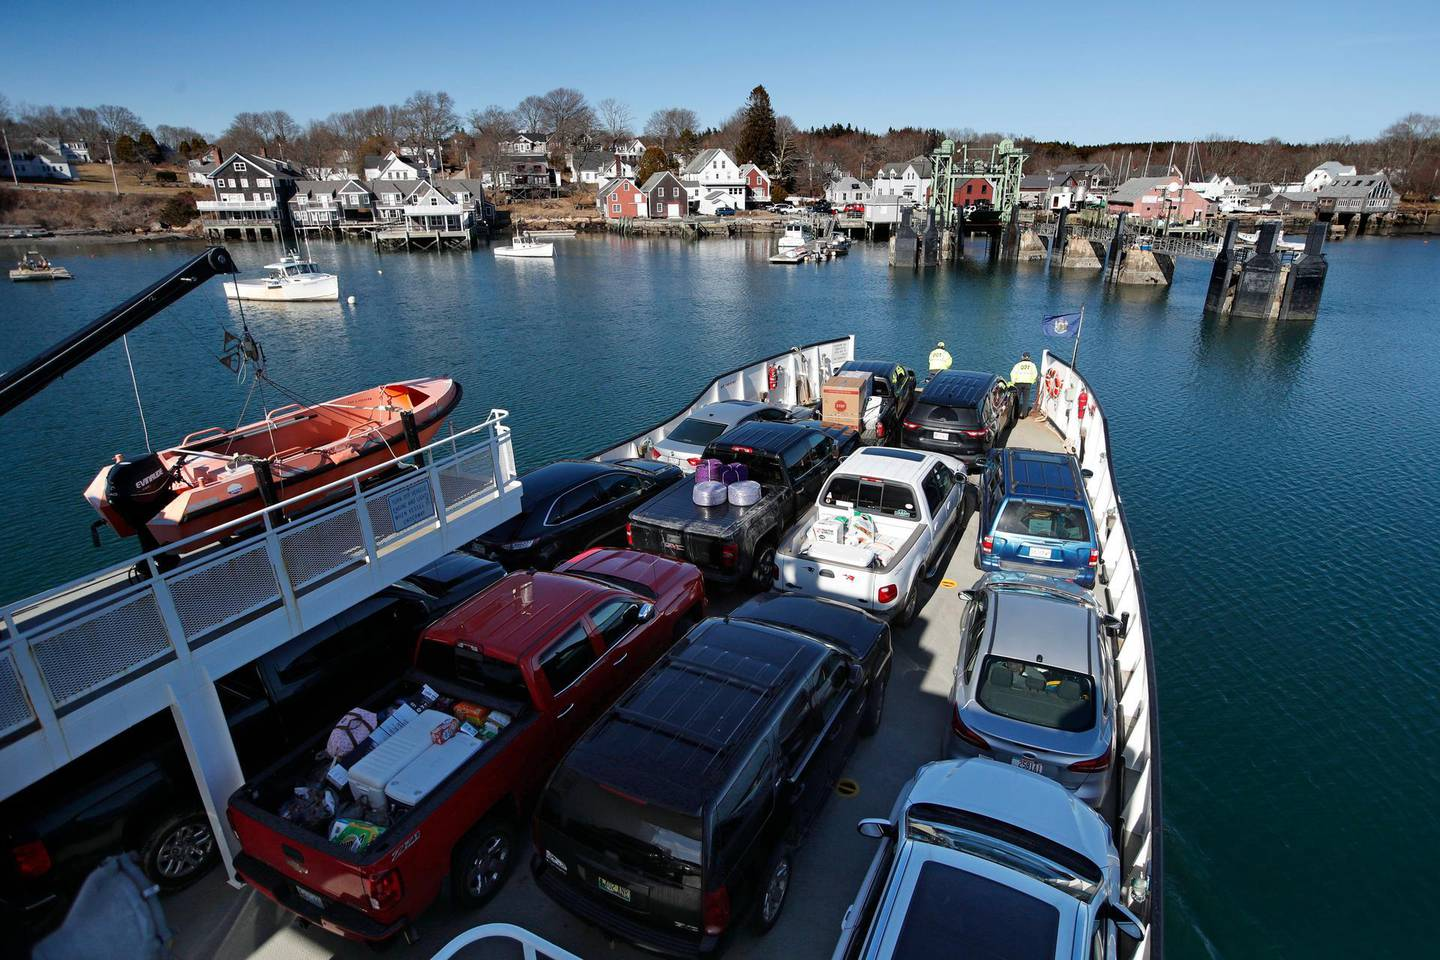 An automobile ferry arrives at North Haven, Maine, Monday, March 16, 2020. The North Haven Select Board voted to ban visitors and seasonal residents immediately to prevent the spread of the coronavirus to the island in Penobscot Bay. For most people, the new coronavirus causes only mild or moderate symptoms, such as fever and cough. For some, especially older adults and people with existing health problems, it can cause more severe illness, including pneumonia. The vast majority of people recover from the new virus. (AP Photo/Robert F. Bukaty)